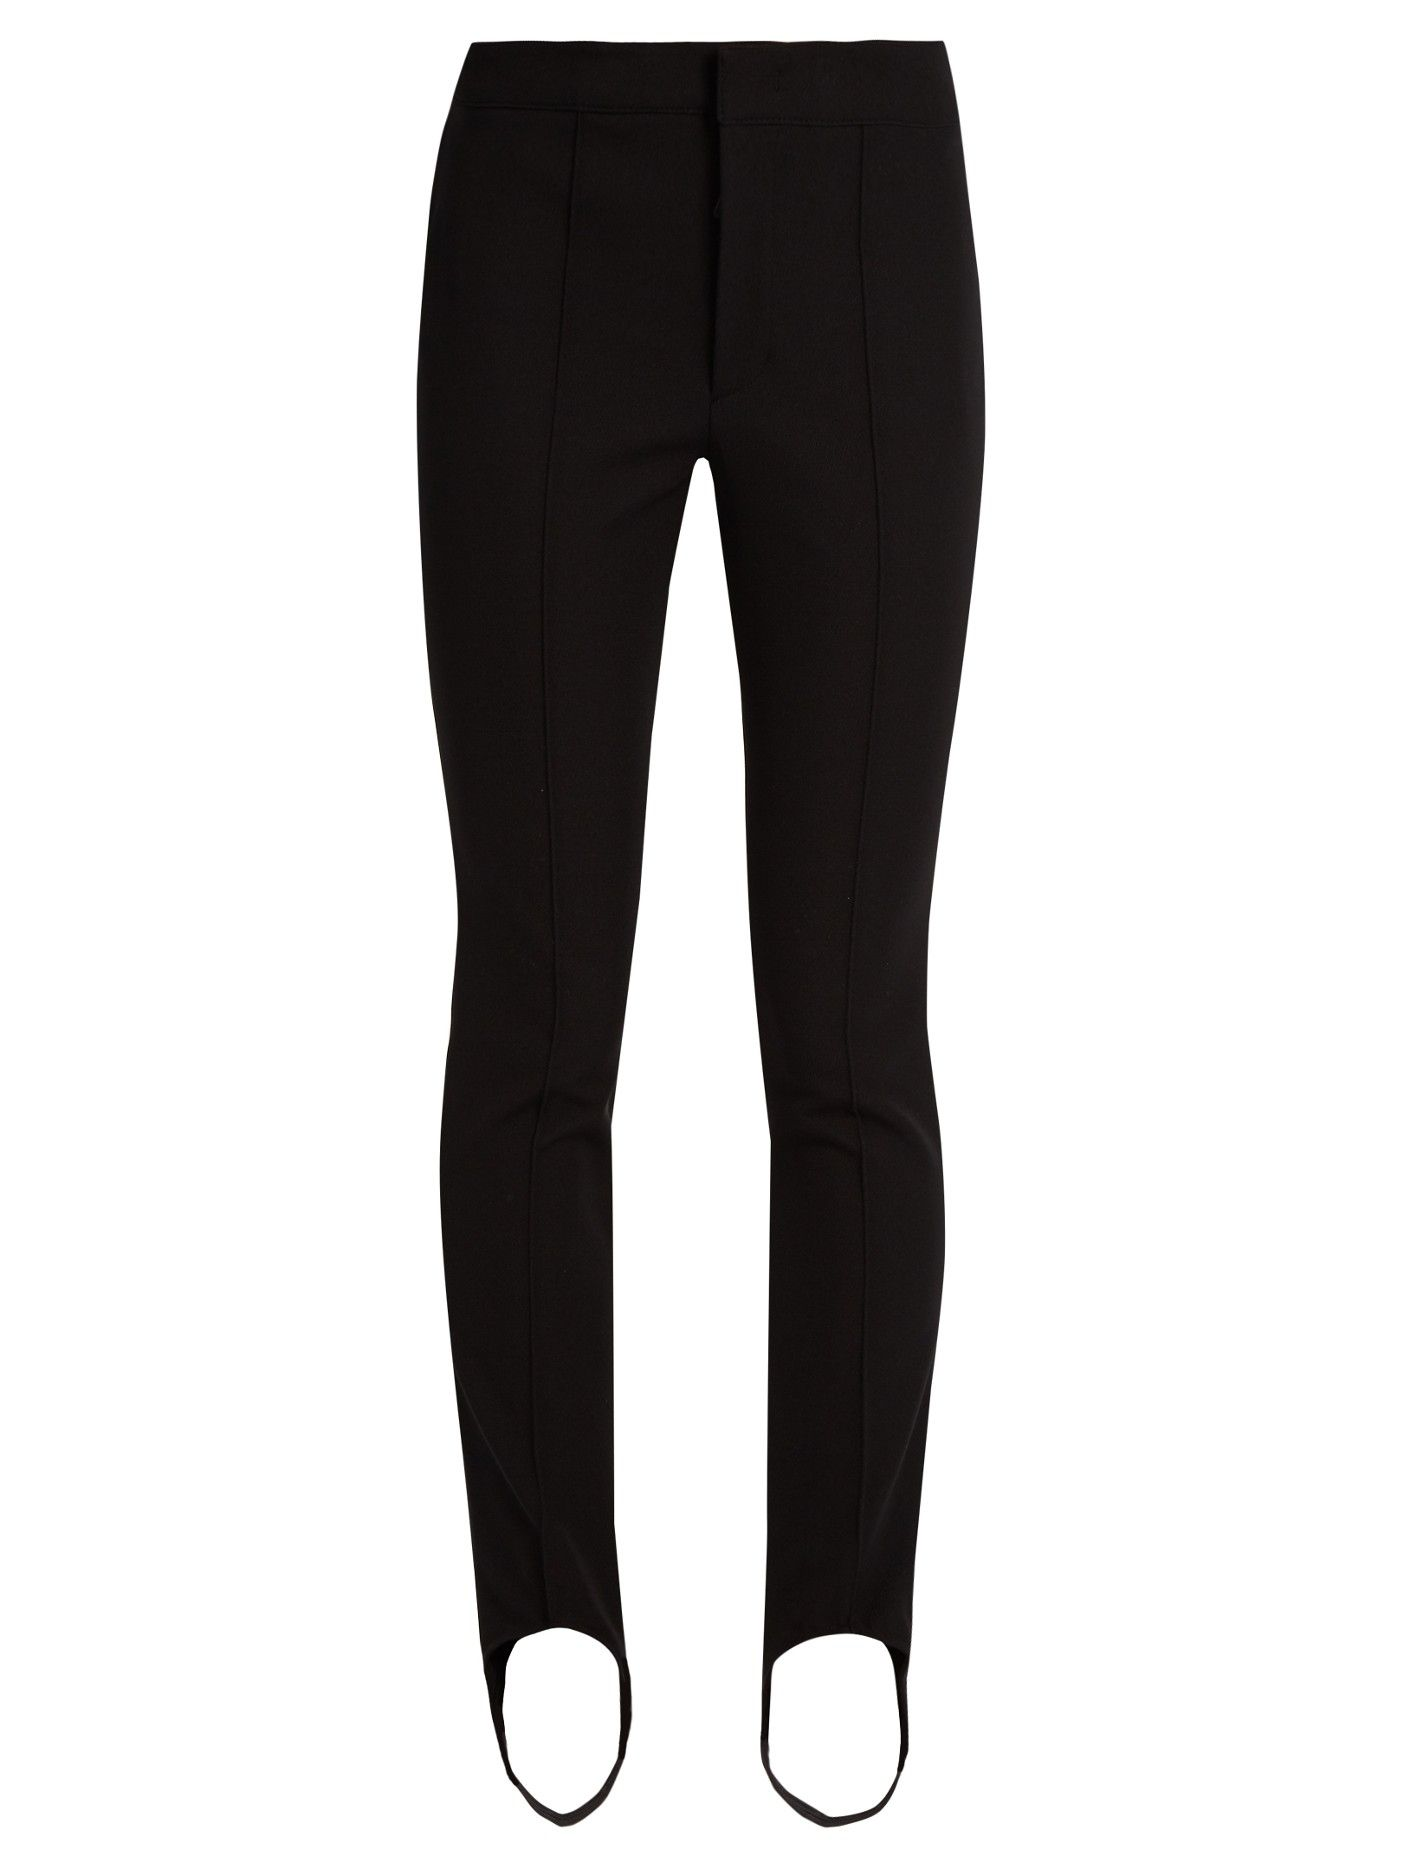 Stirrup ski leggings   Moncler Grenoble   MATCHESFASHION.COM US ... 1e1b472d403